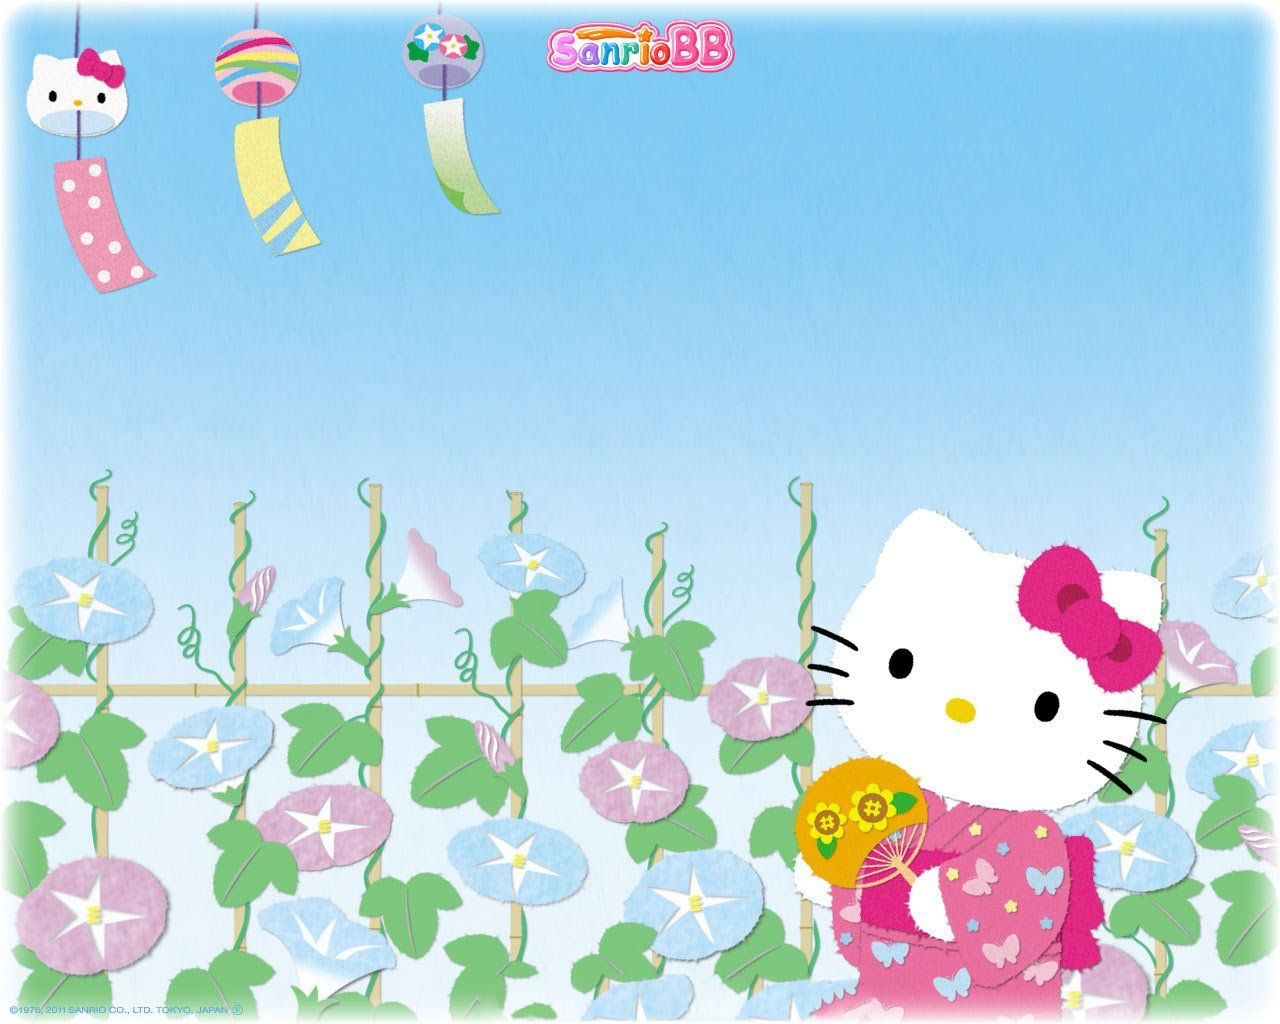 Simple Wallpaper Hello Kitty Spring - 54e71a886ce2394c755453276d279878  Image_631491.jpg